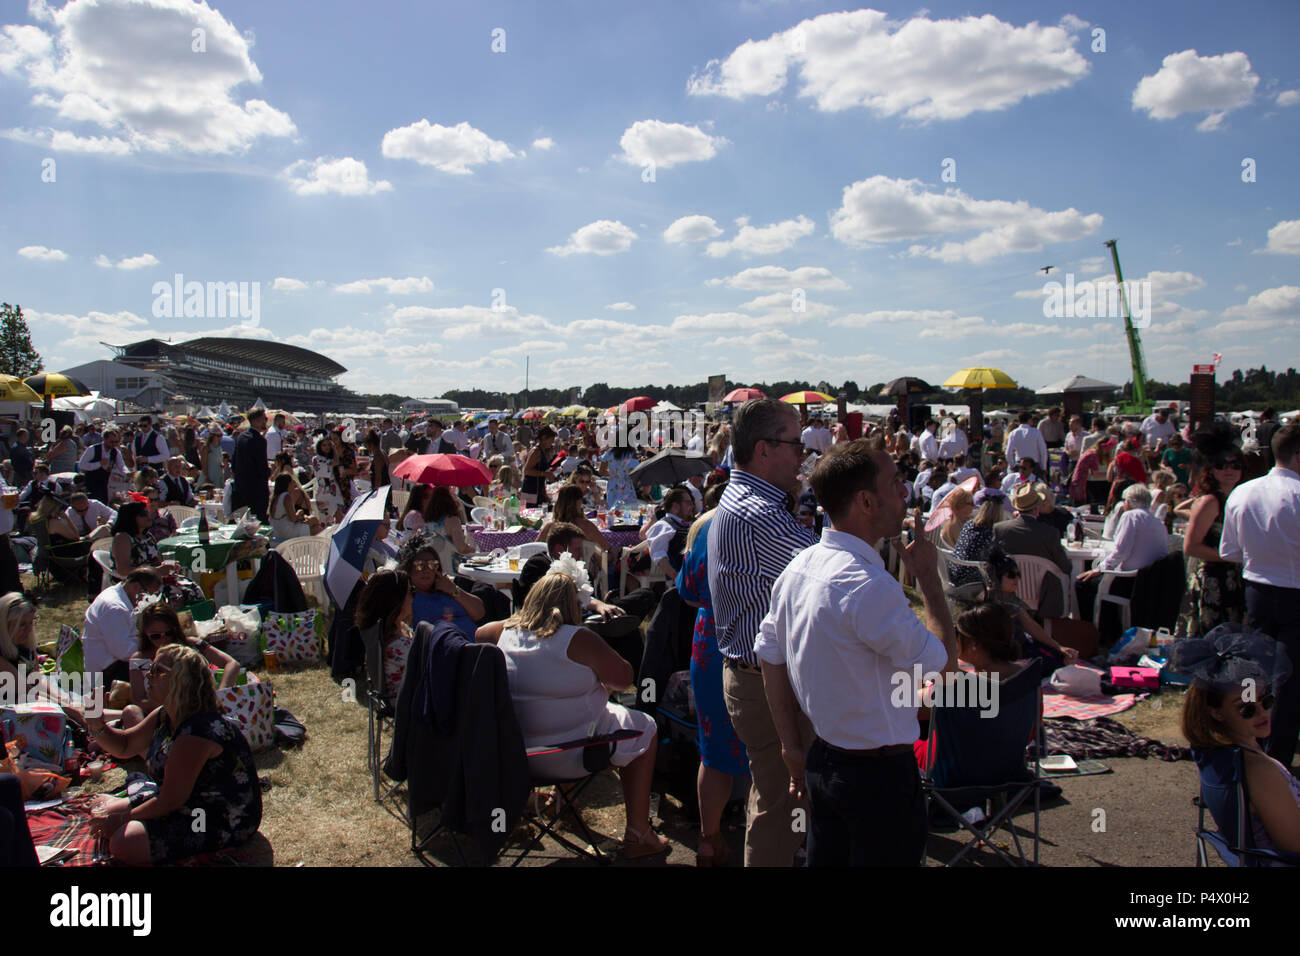 Large crowds of people sitting on grass in Windsor enclosure at Royal Ascot Stock Photo